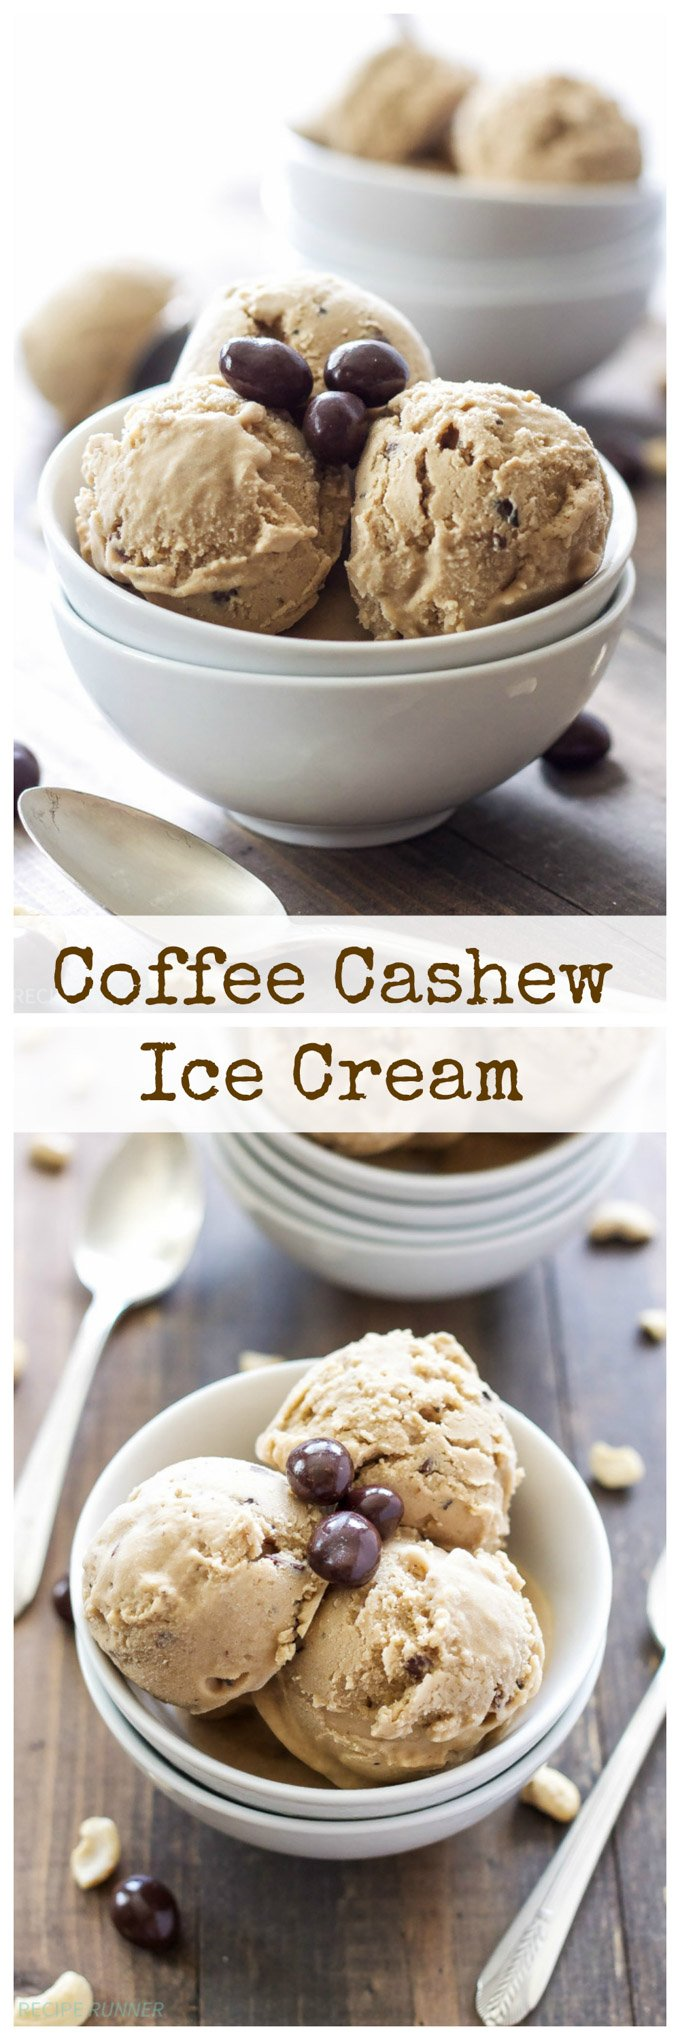 Coffee Cashew Ice Cream | You'll never suspect this Coffee Cashew Ice Cream is dairy-free and vegan! #ad #SilkCashew #VanillaCashew